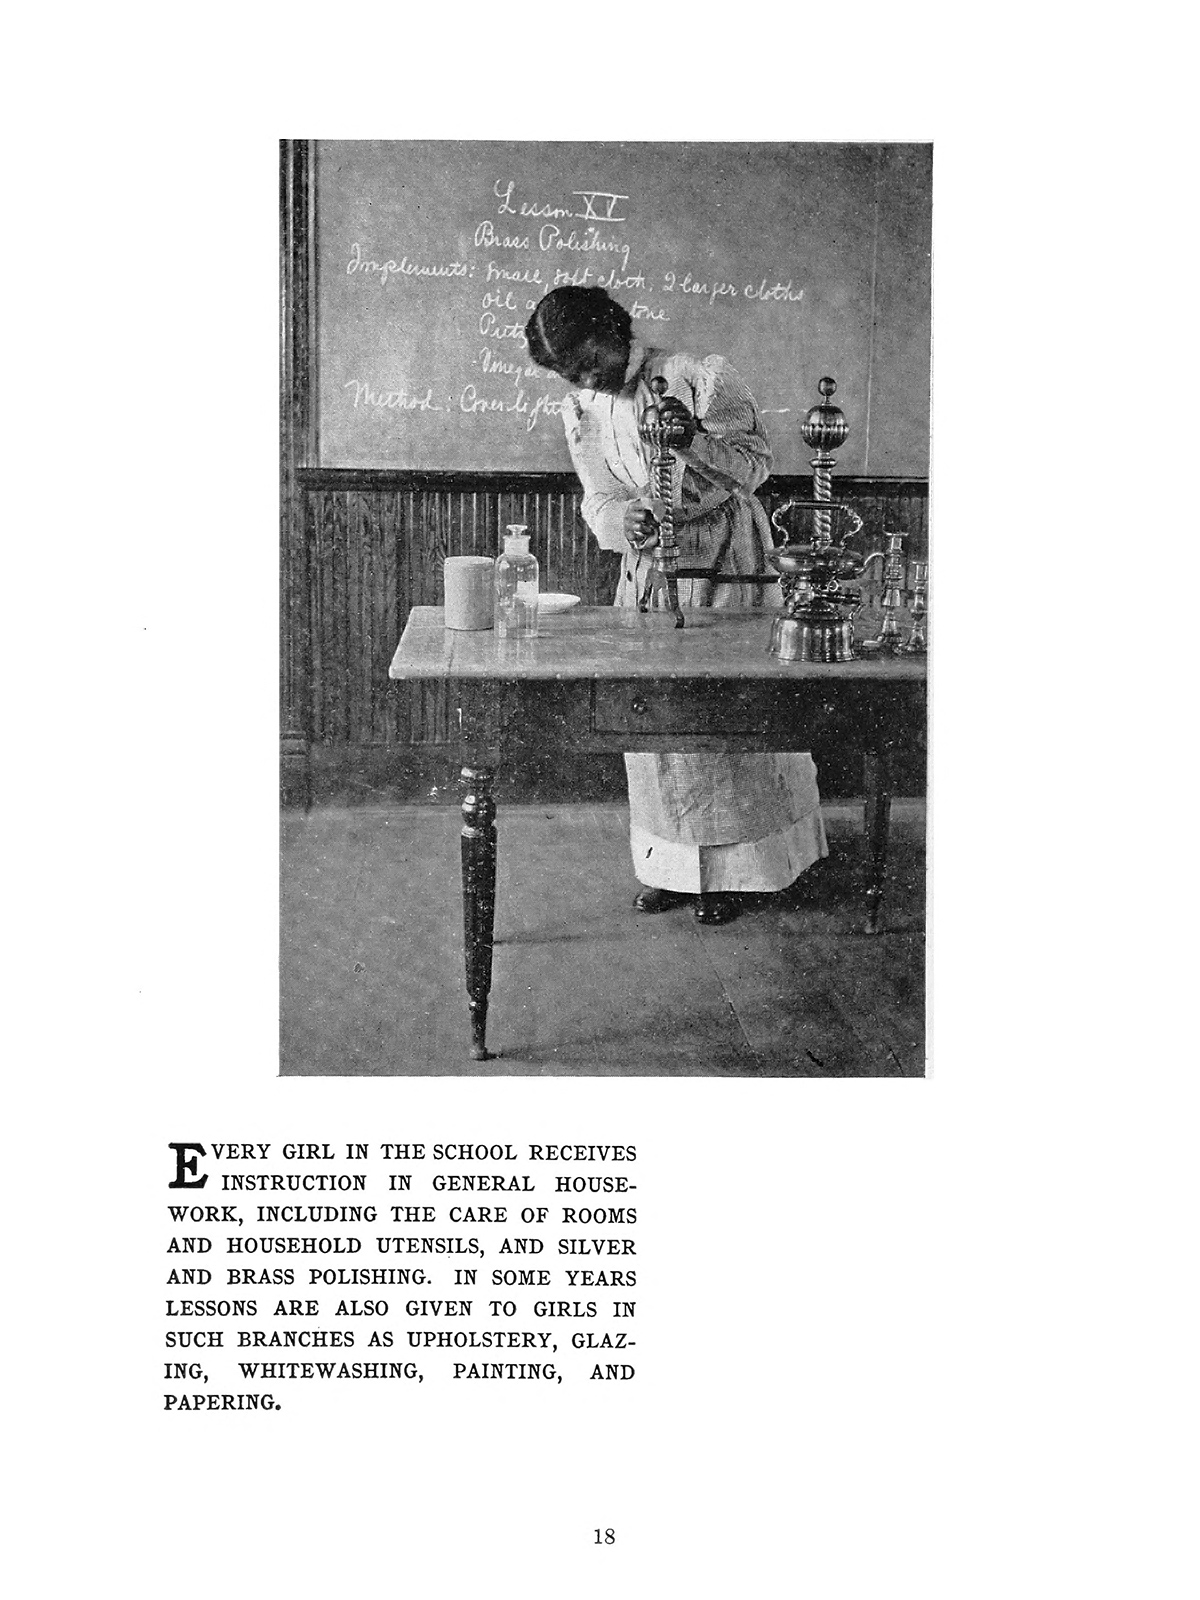 "This page from a book shows a black and white photograph of an African American woman cleaning a silver object on a table. She wears a long white dress with an apron over it. Several other objects on the table as well as a bottle of cleaner. The caption below the image reads ""Every girl in the school receives instruction in general housework, including the care of rooms and household utensils, and silver and brass polishing."""